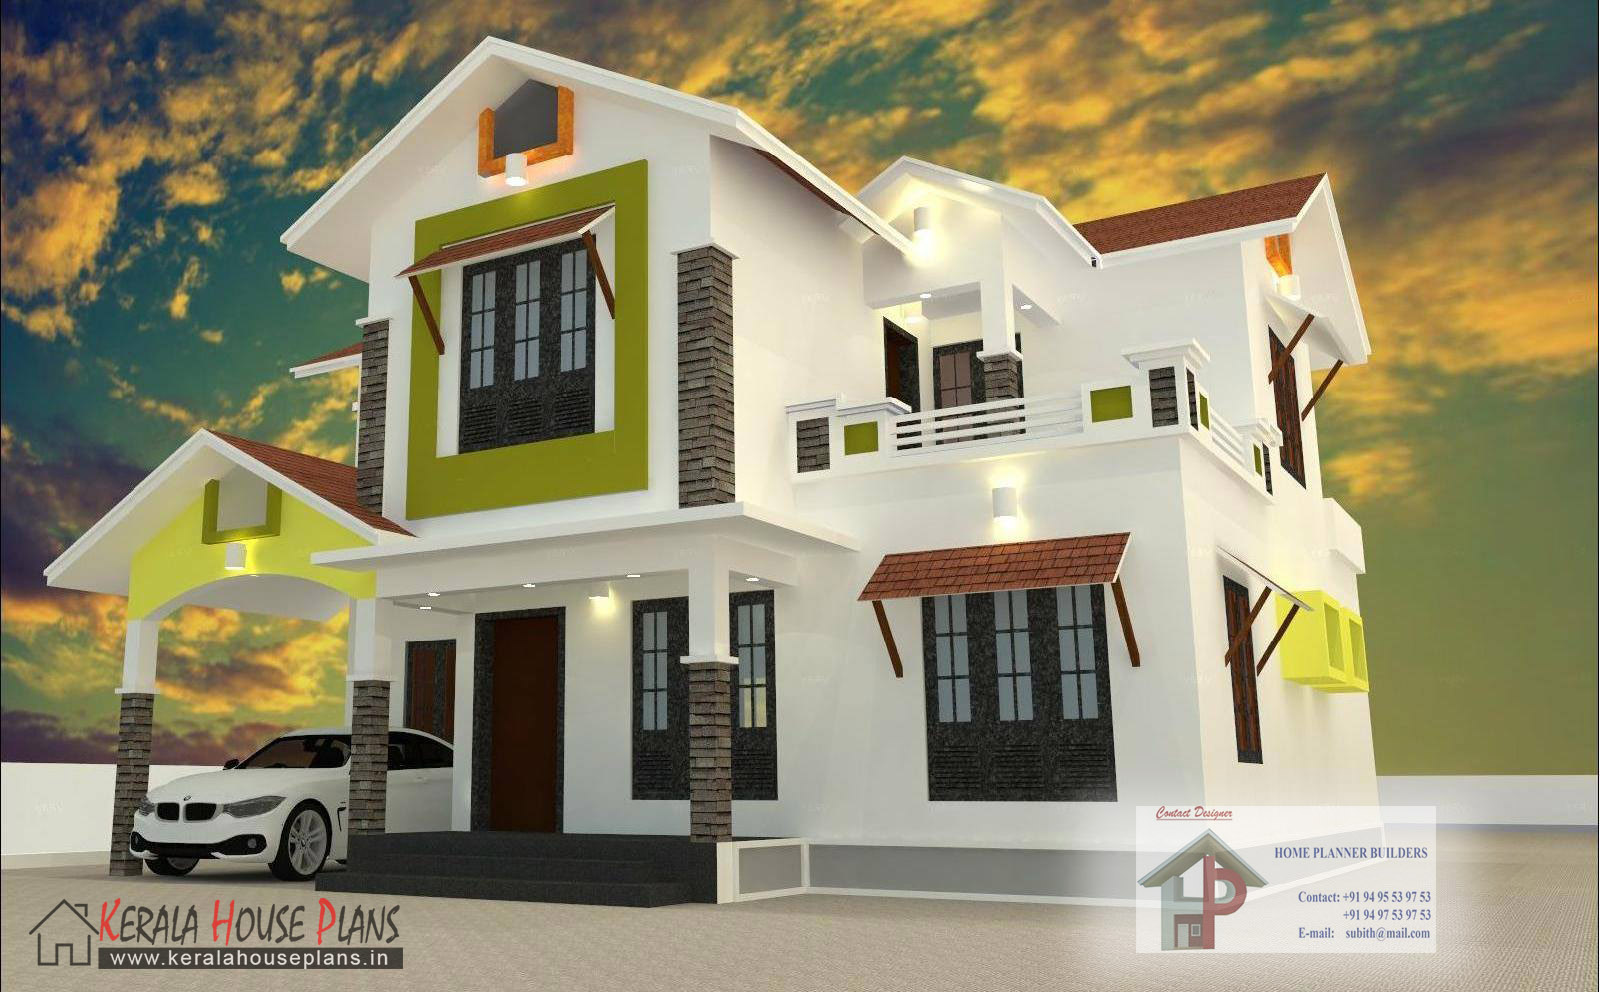 New house plans in kerala 2017 for New home designs kerala